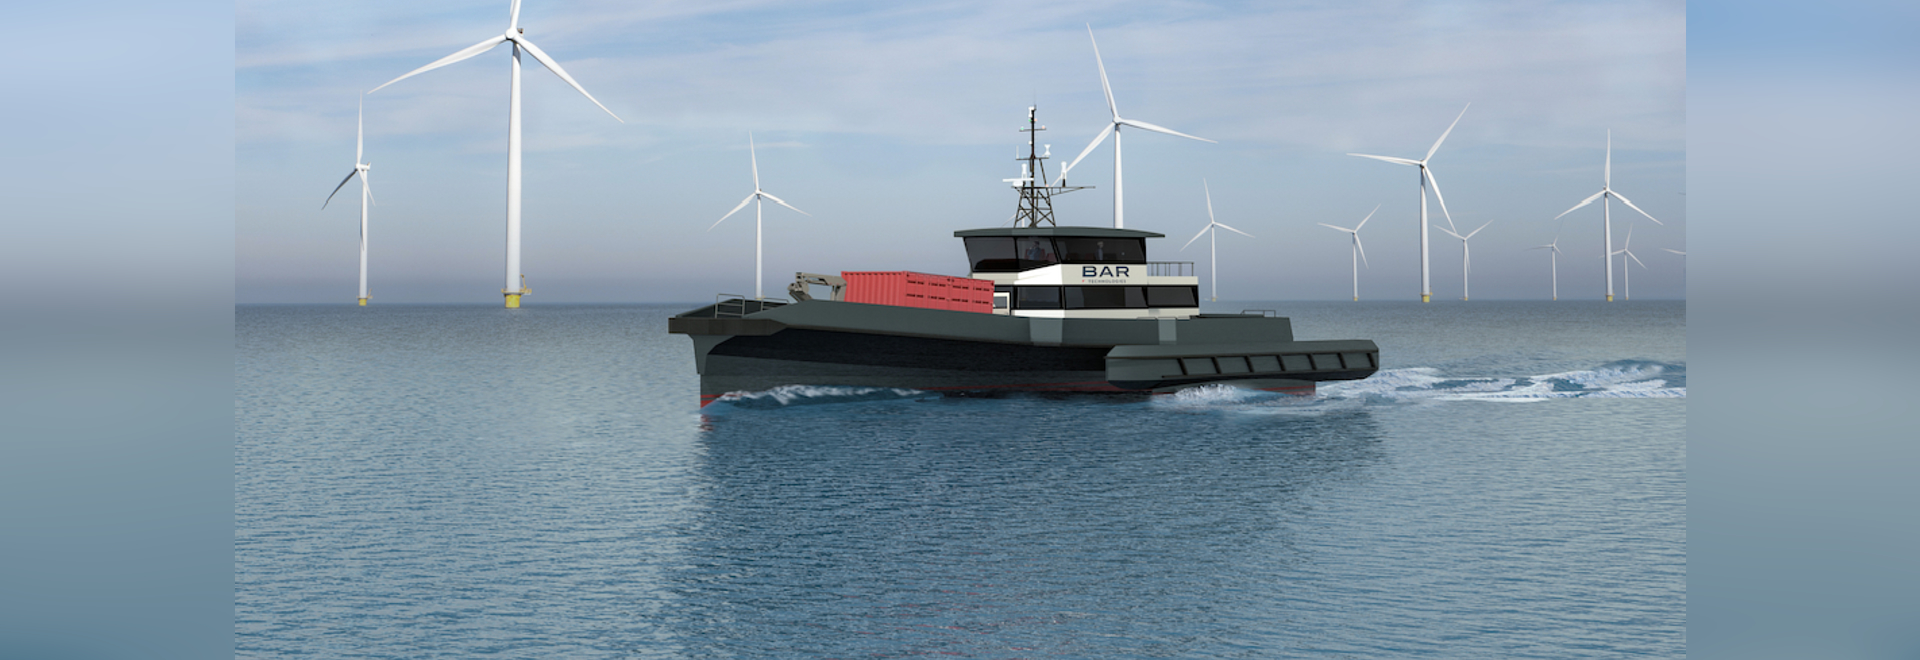 The BAR Technologies 30-meter CTV design is aimed at demands of the U.S. East Coast offshore wind energy industry.